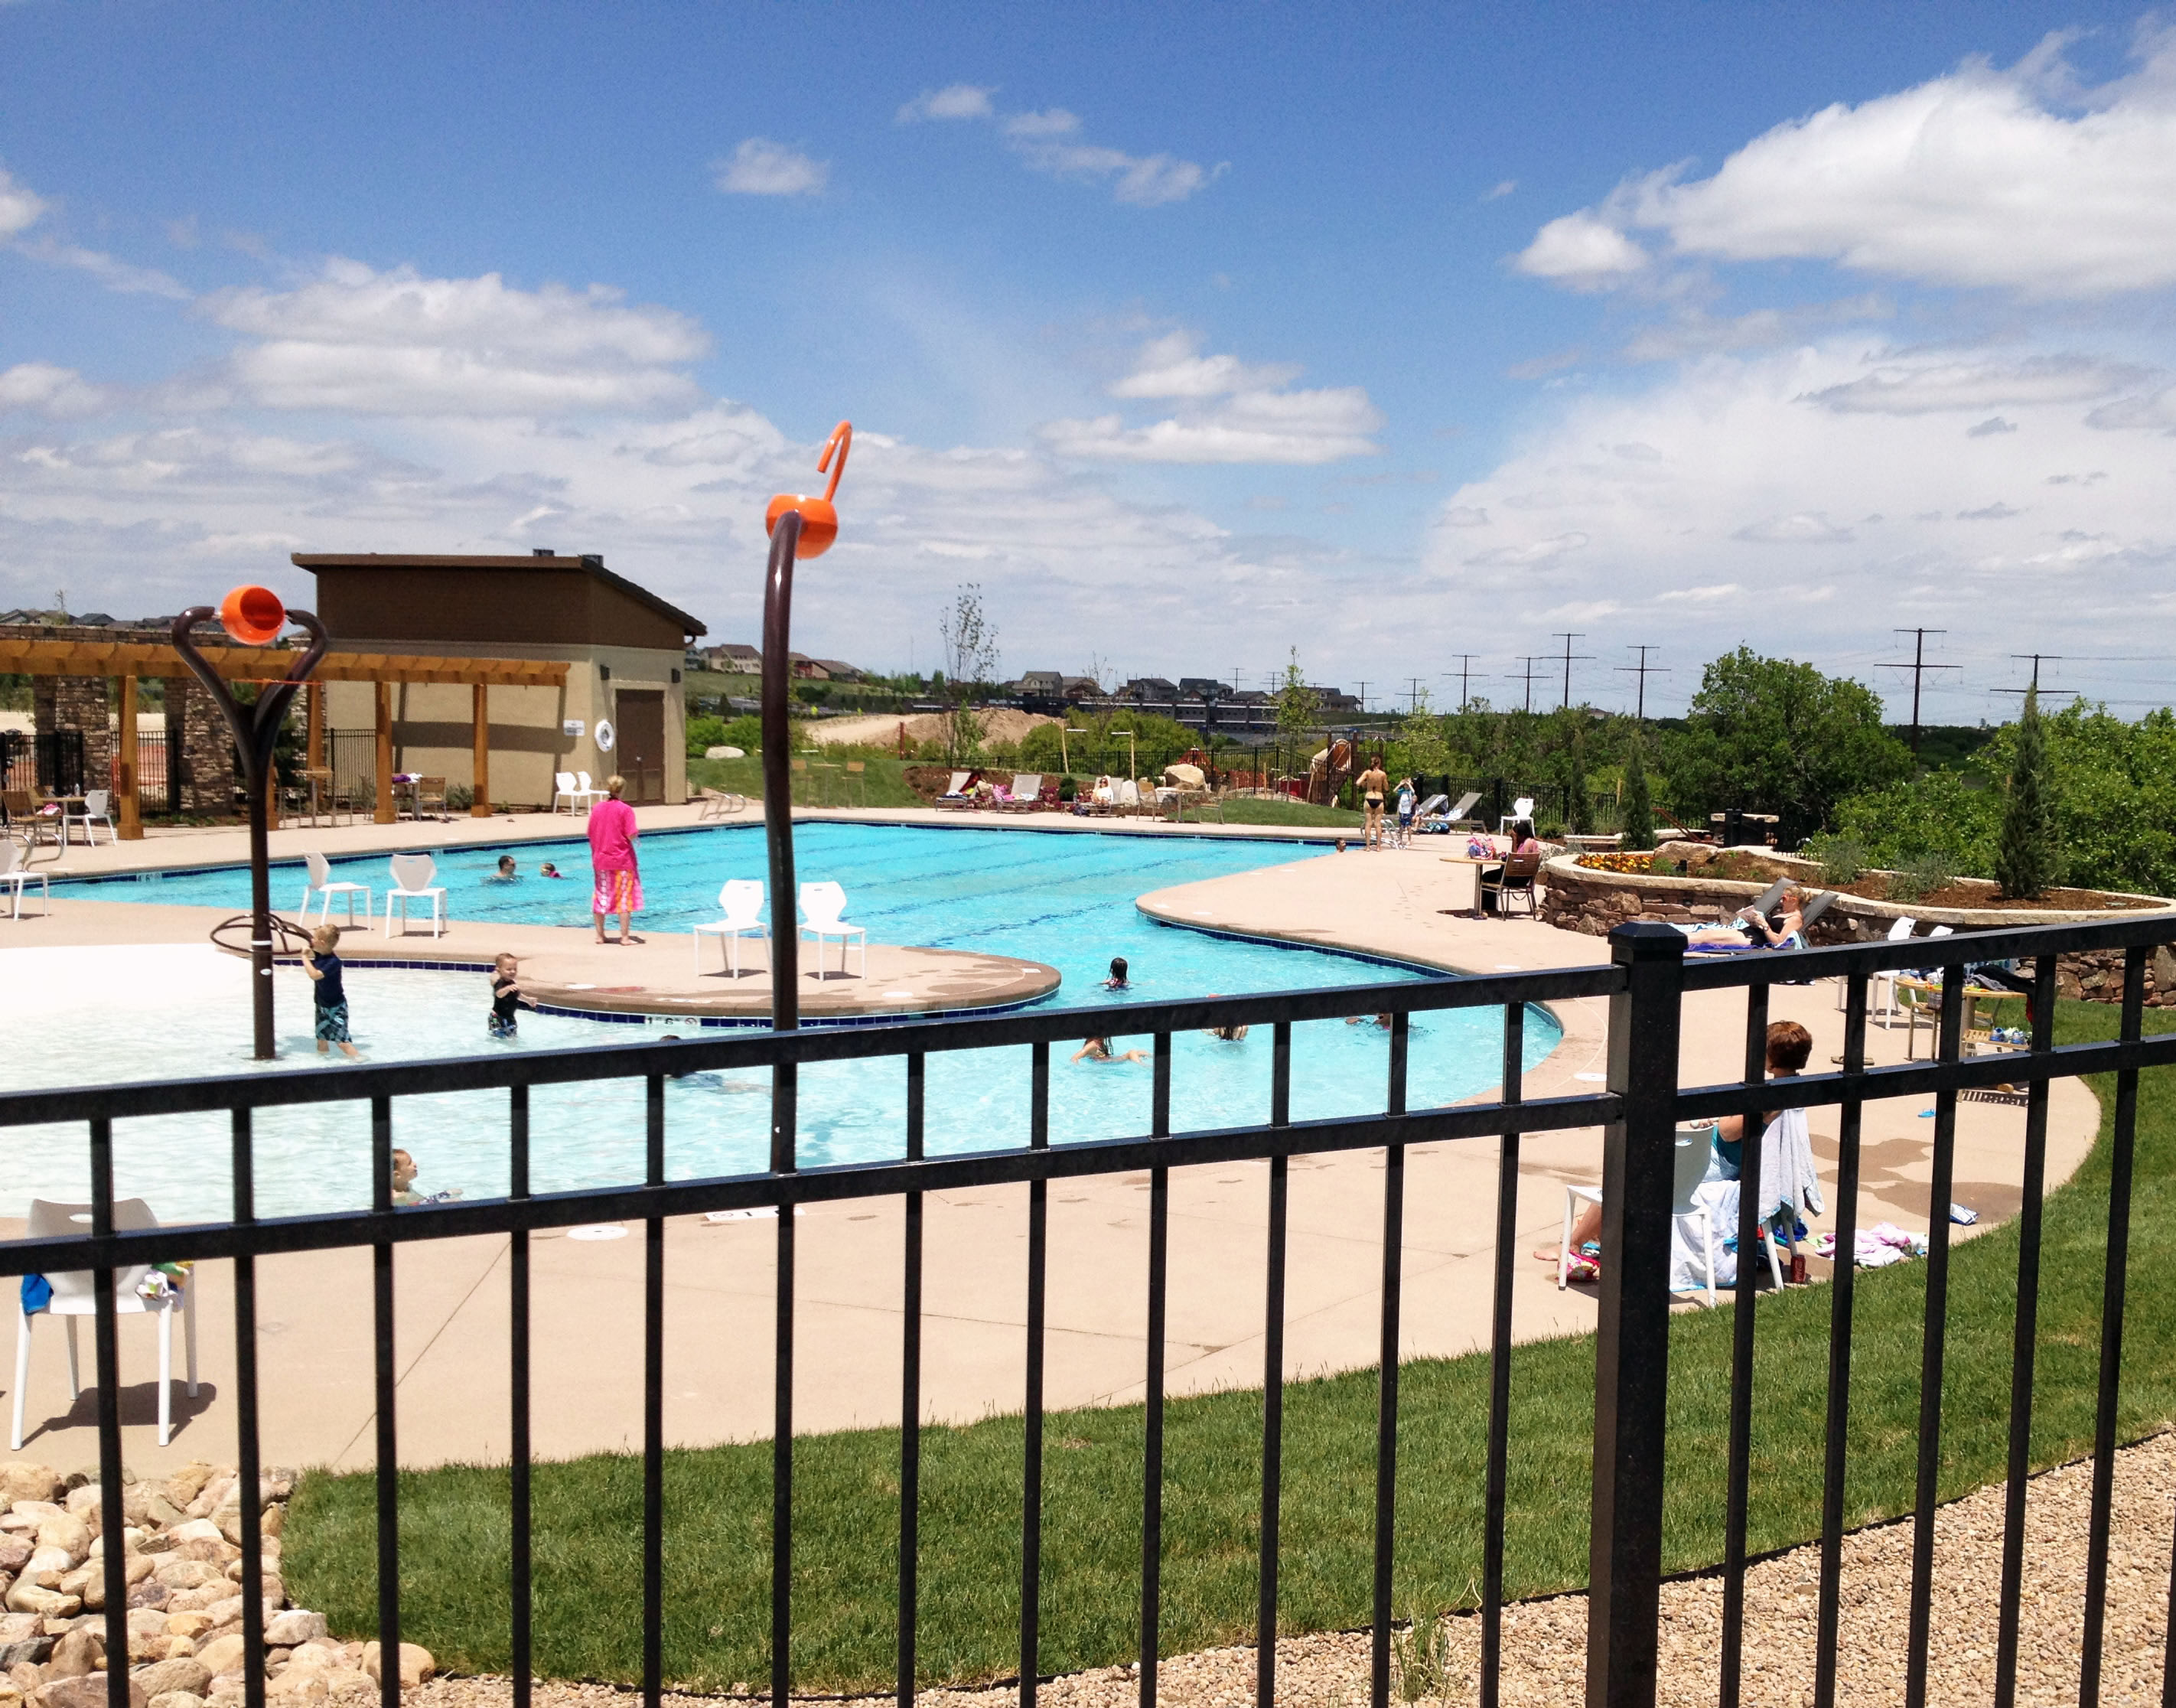 RESIDENTS ROCK THE TERRAIN SWIM CLUB